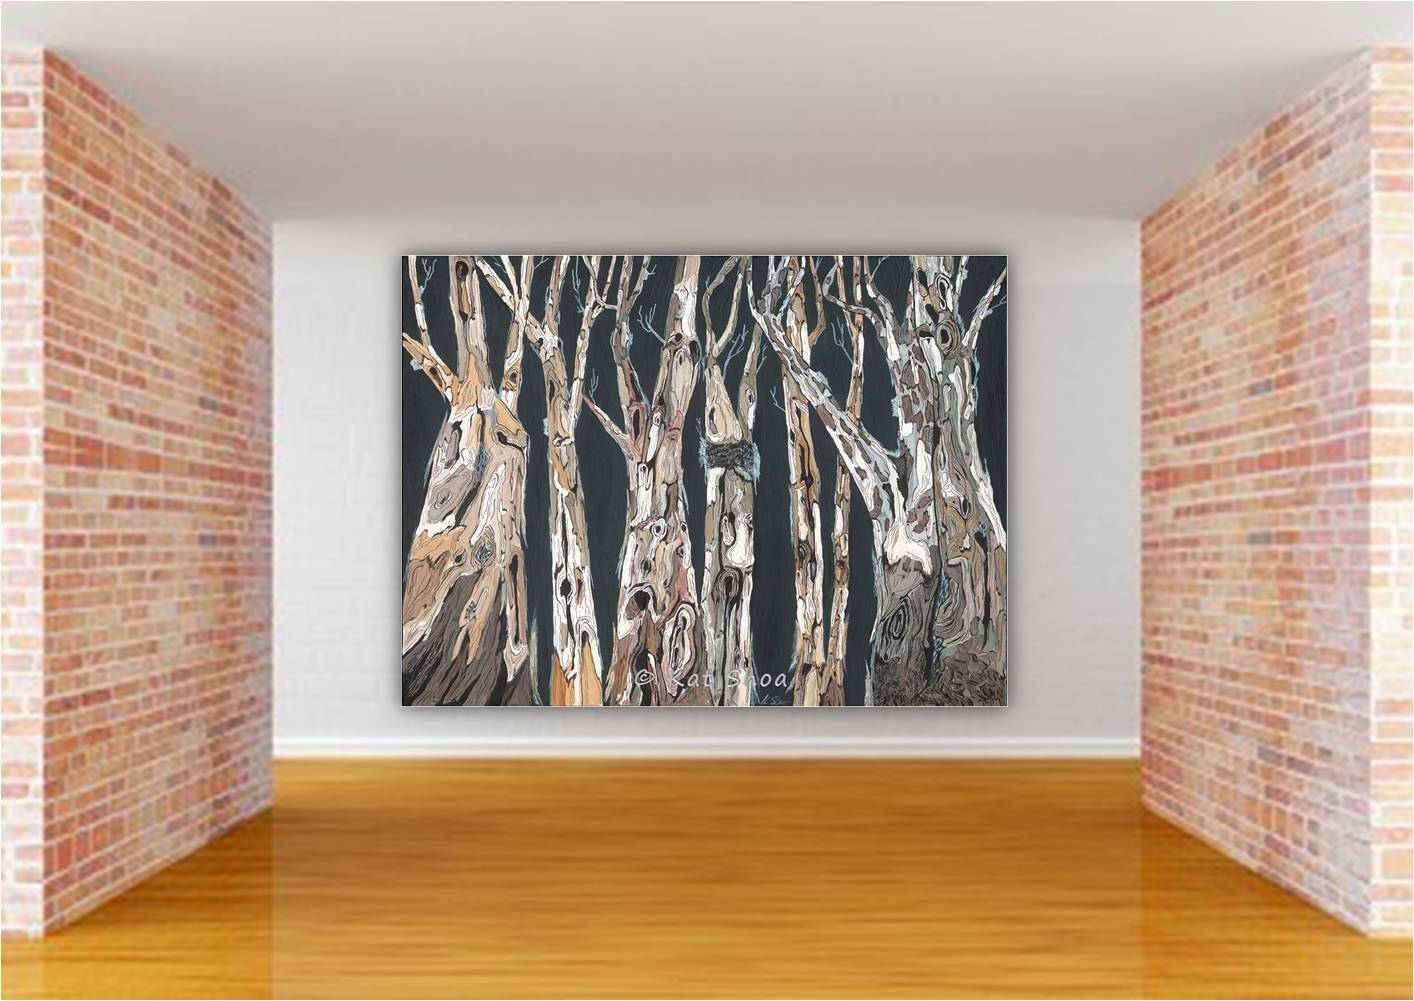 Long Wall Art Extra Large Canvas Print Gicleetree White With Regard To Latest Extra Large Wall Art Prints (View 11 of 20)